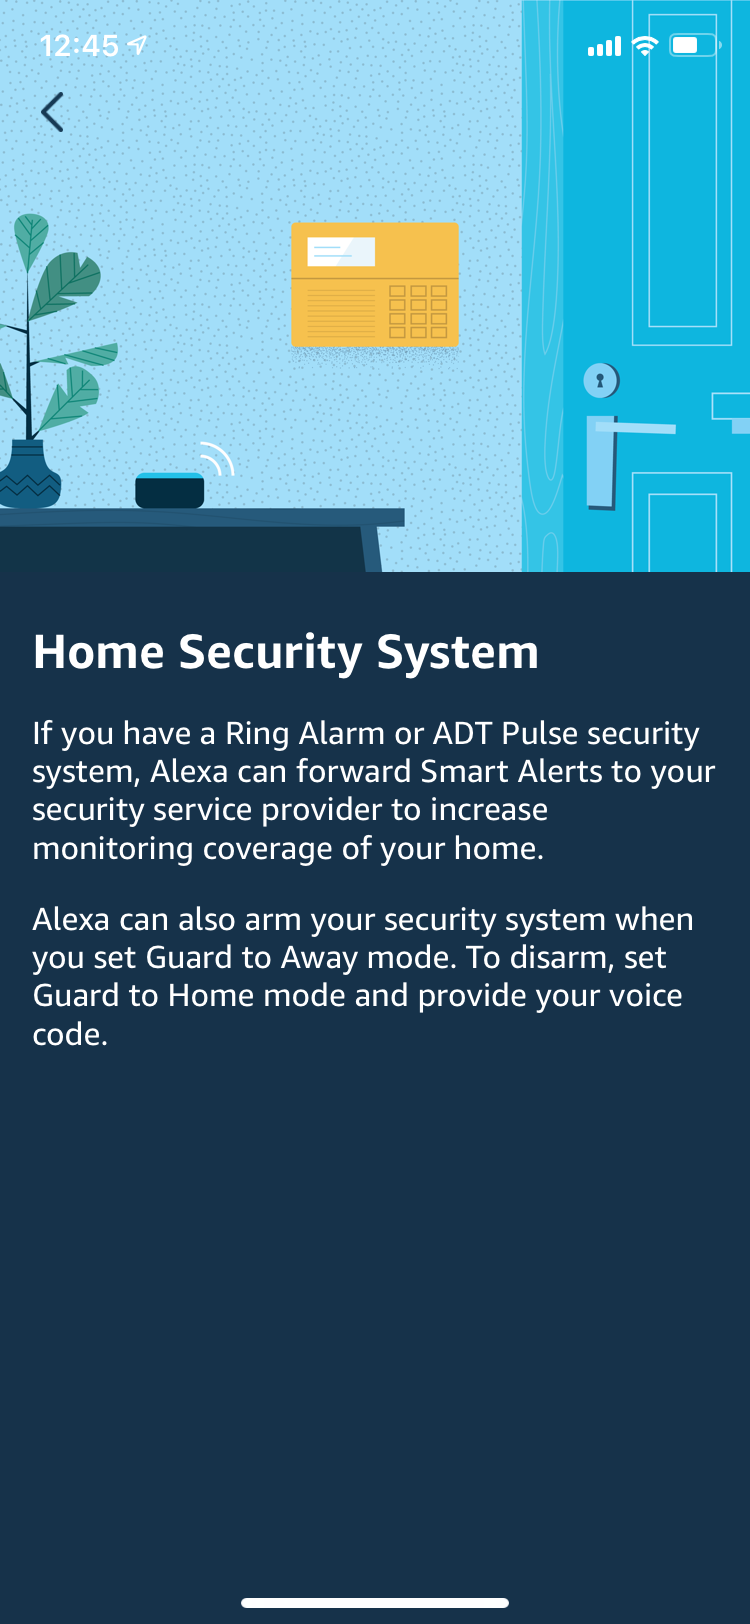 Sync with home security